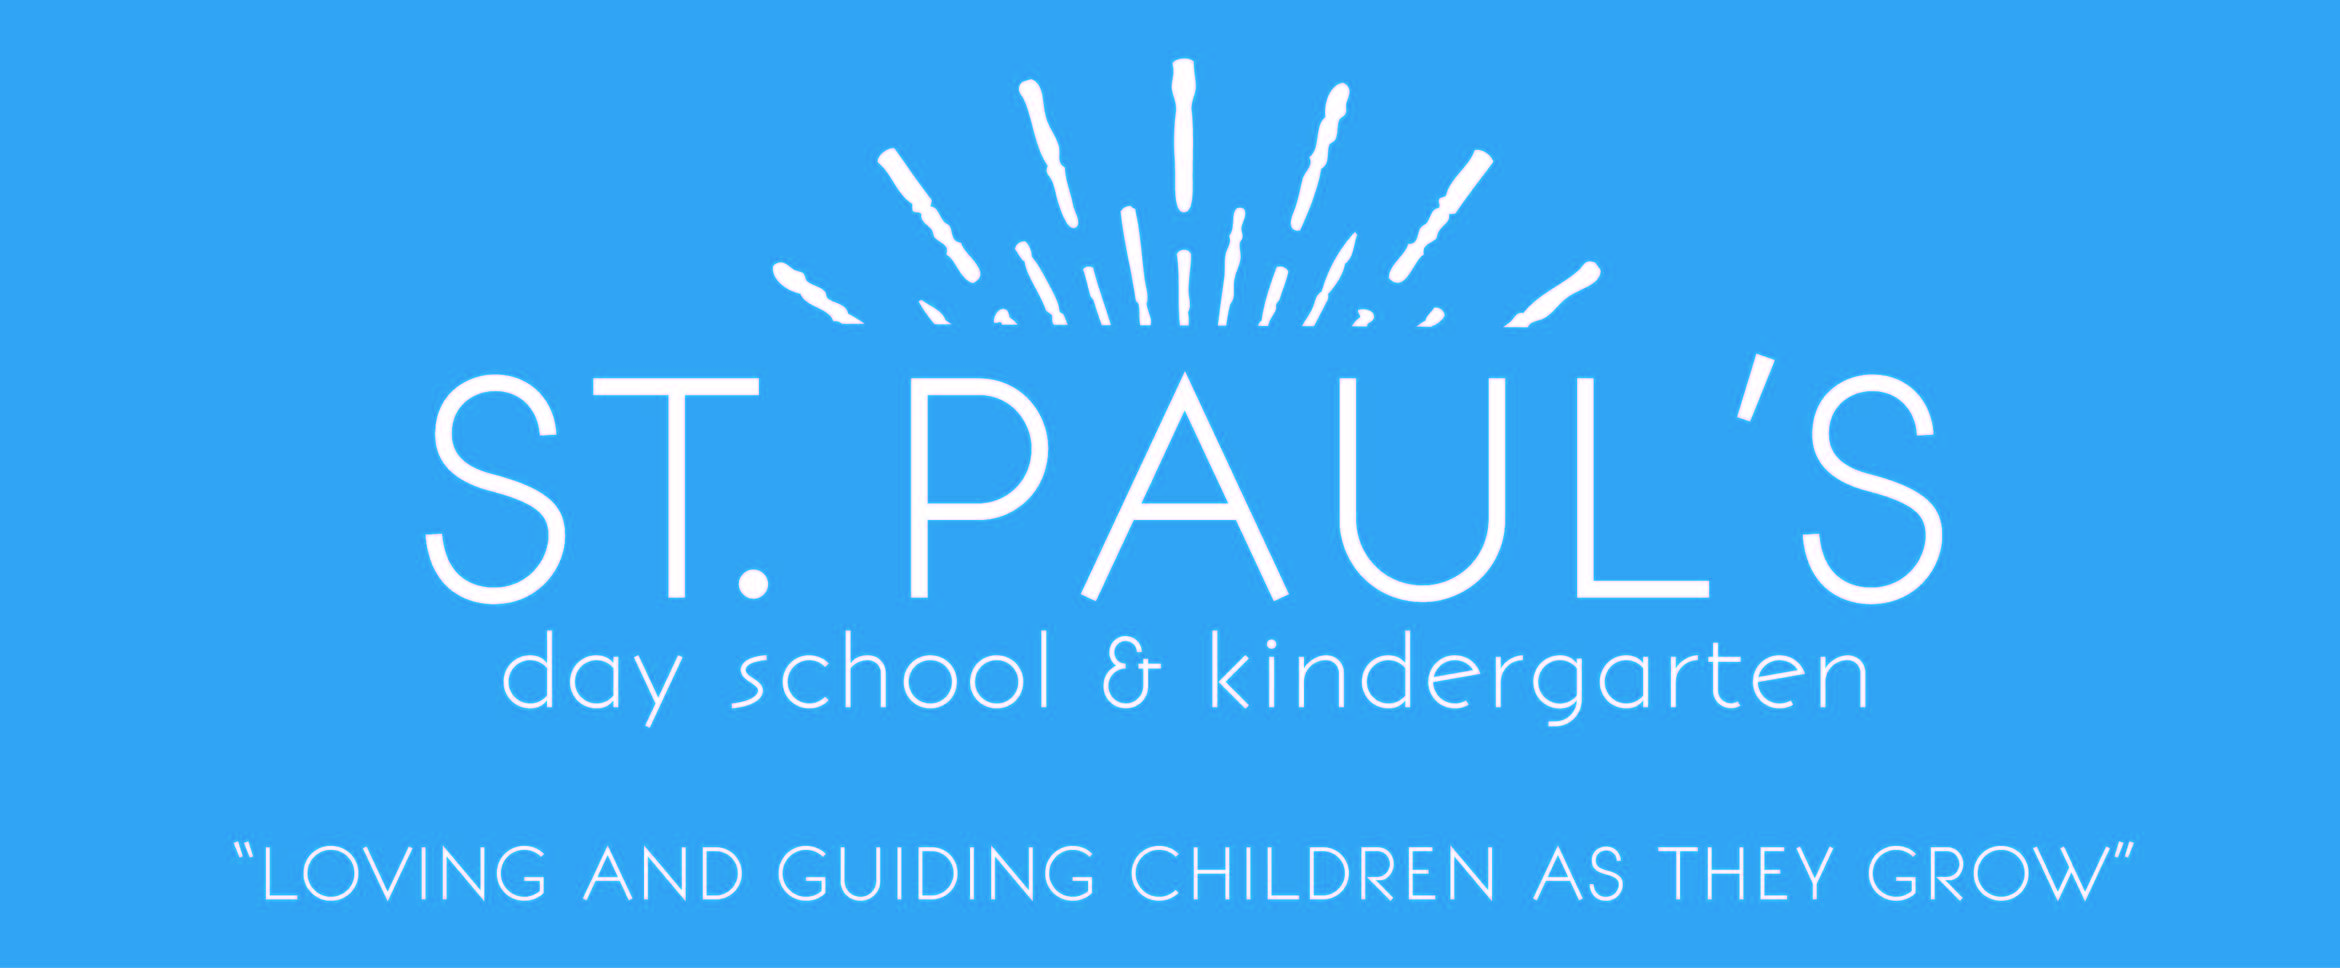 St. Paul\'s Day School and Kindergarten | St. Paul\'s Episcopal Church